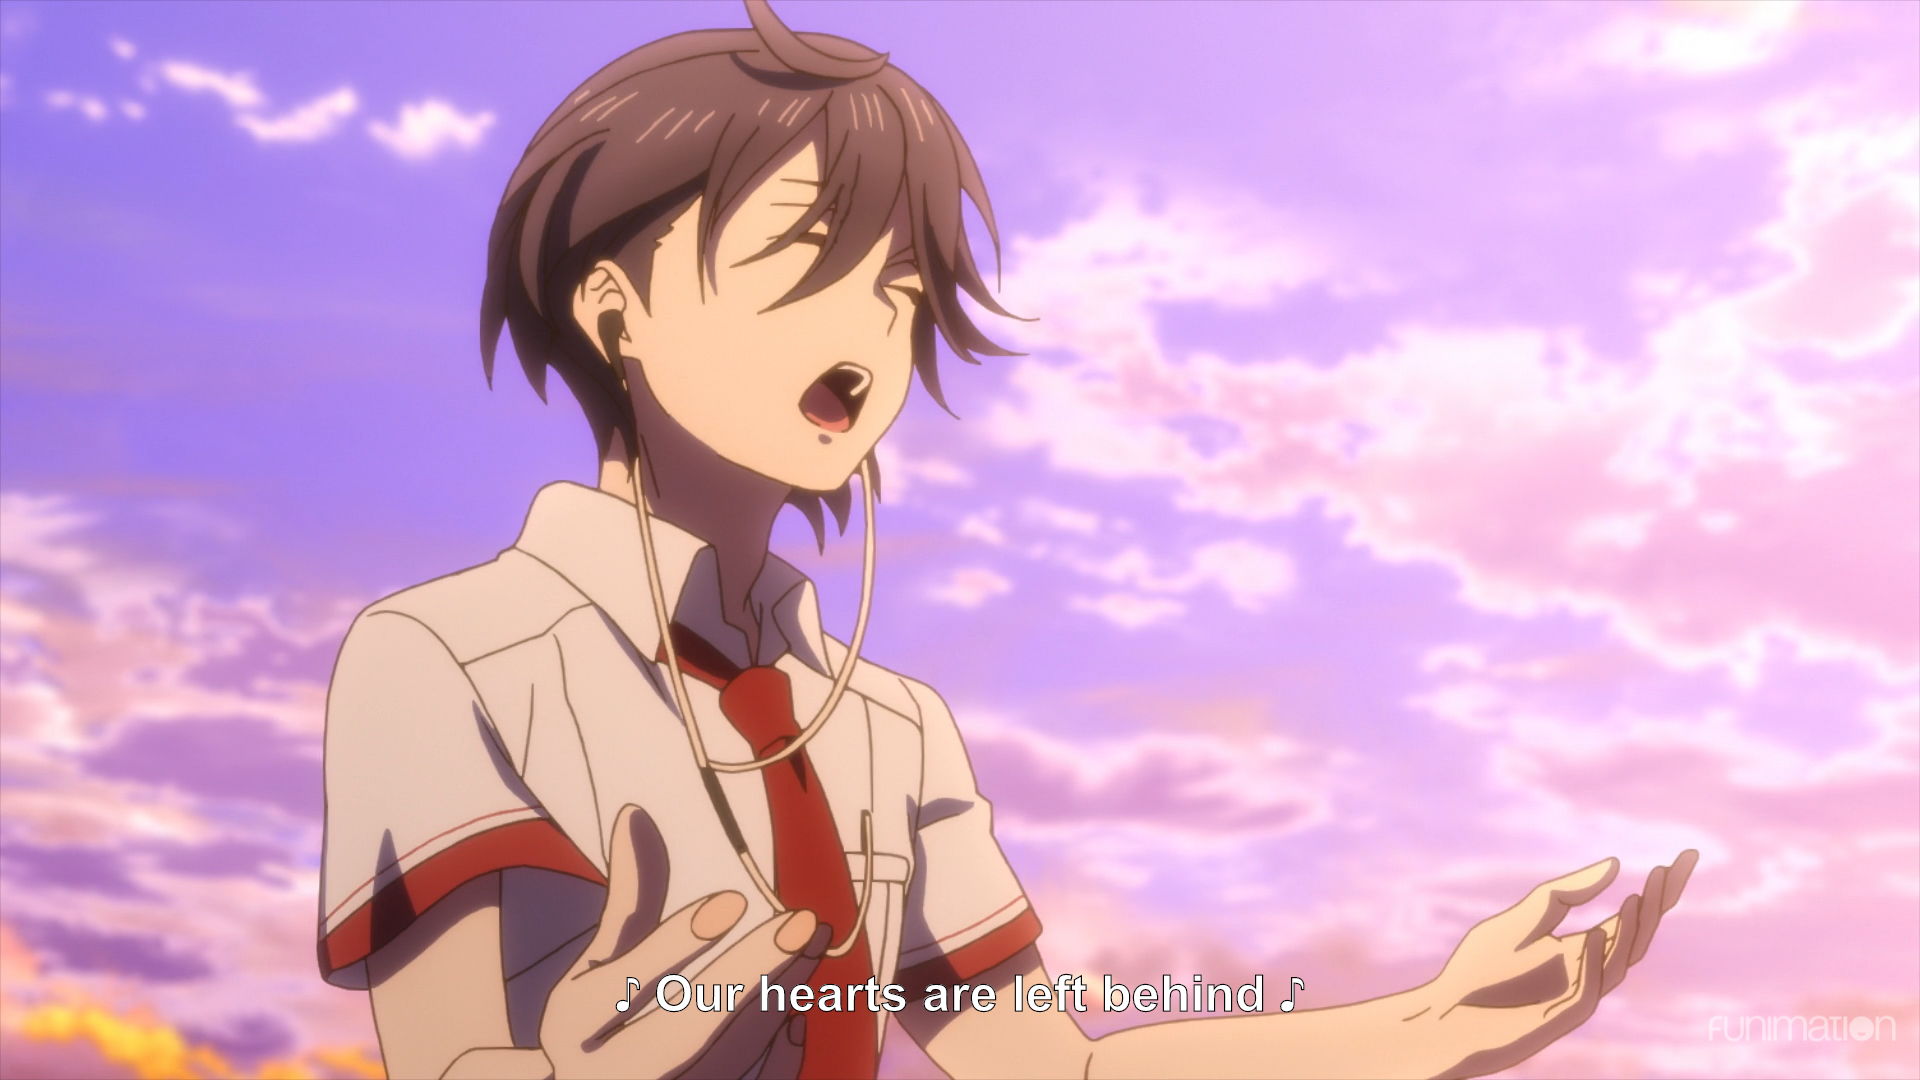 Saku singing against the sunset. subtitle: Our hearts are left behind